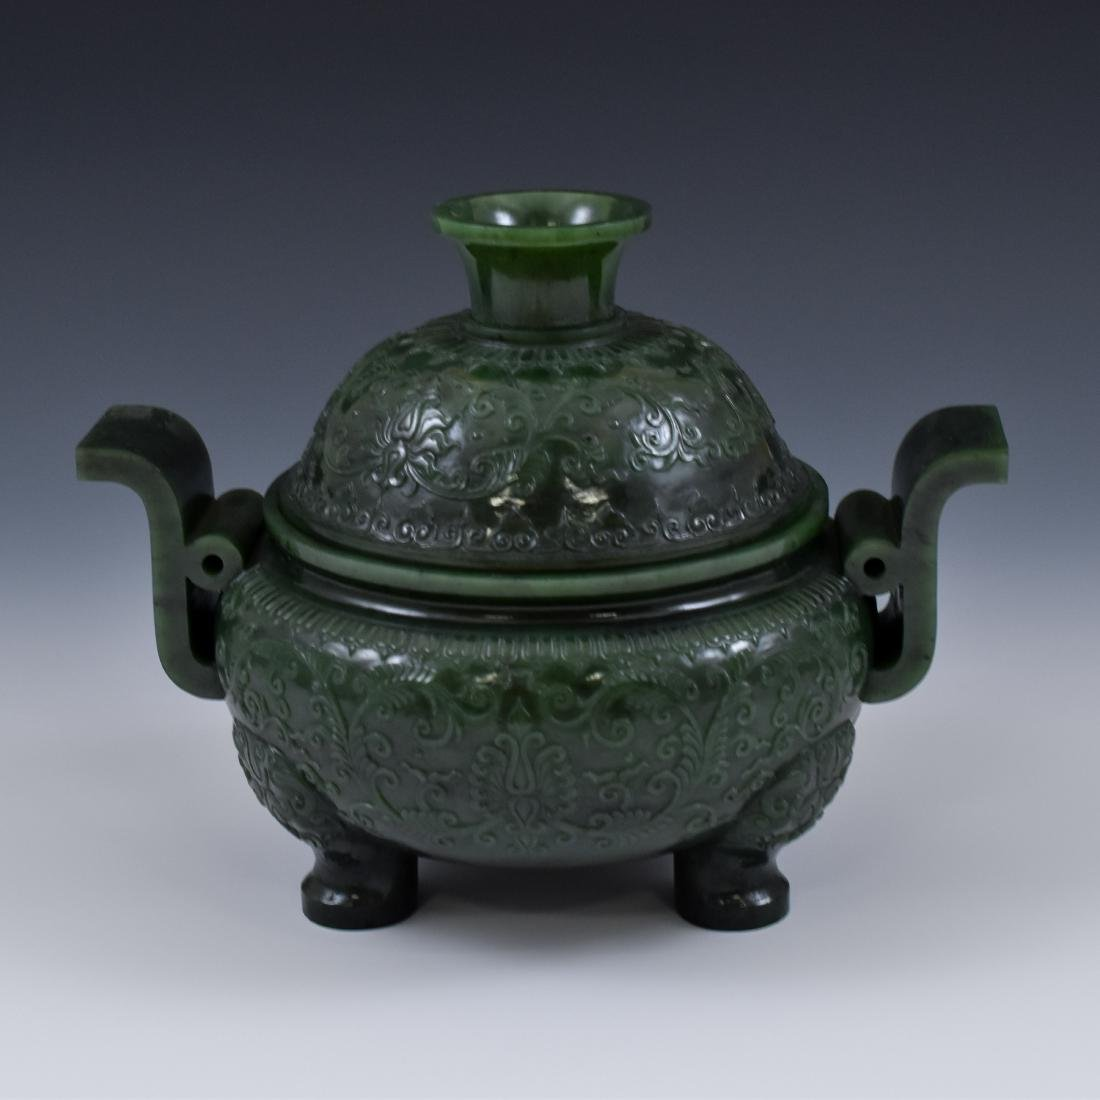 QING CHINESE GREEN JADE COVERED TRIPOD CENSER - 8